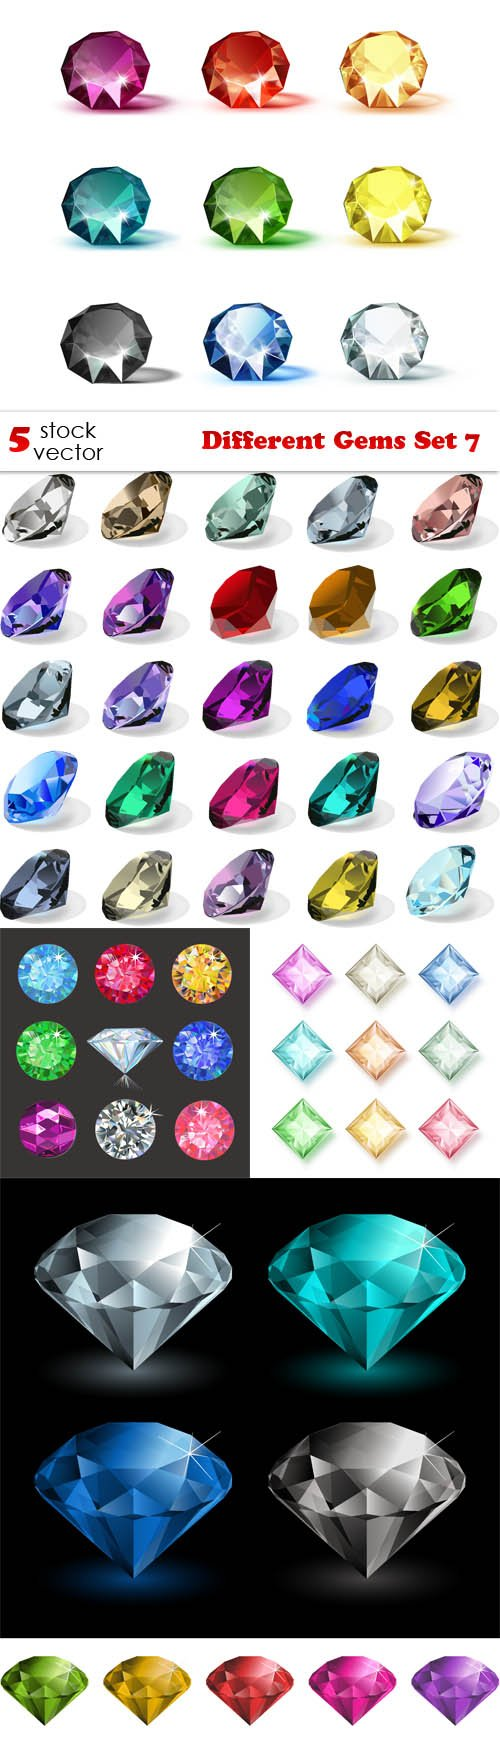 Vectors - Different Gems Set 7